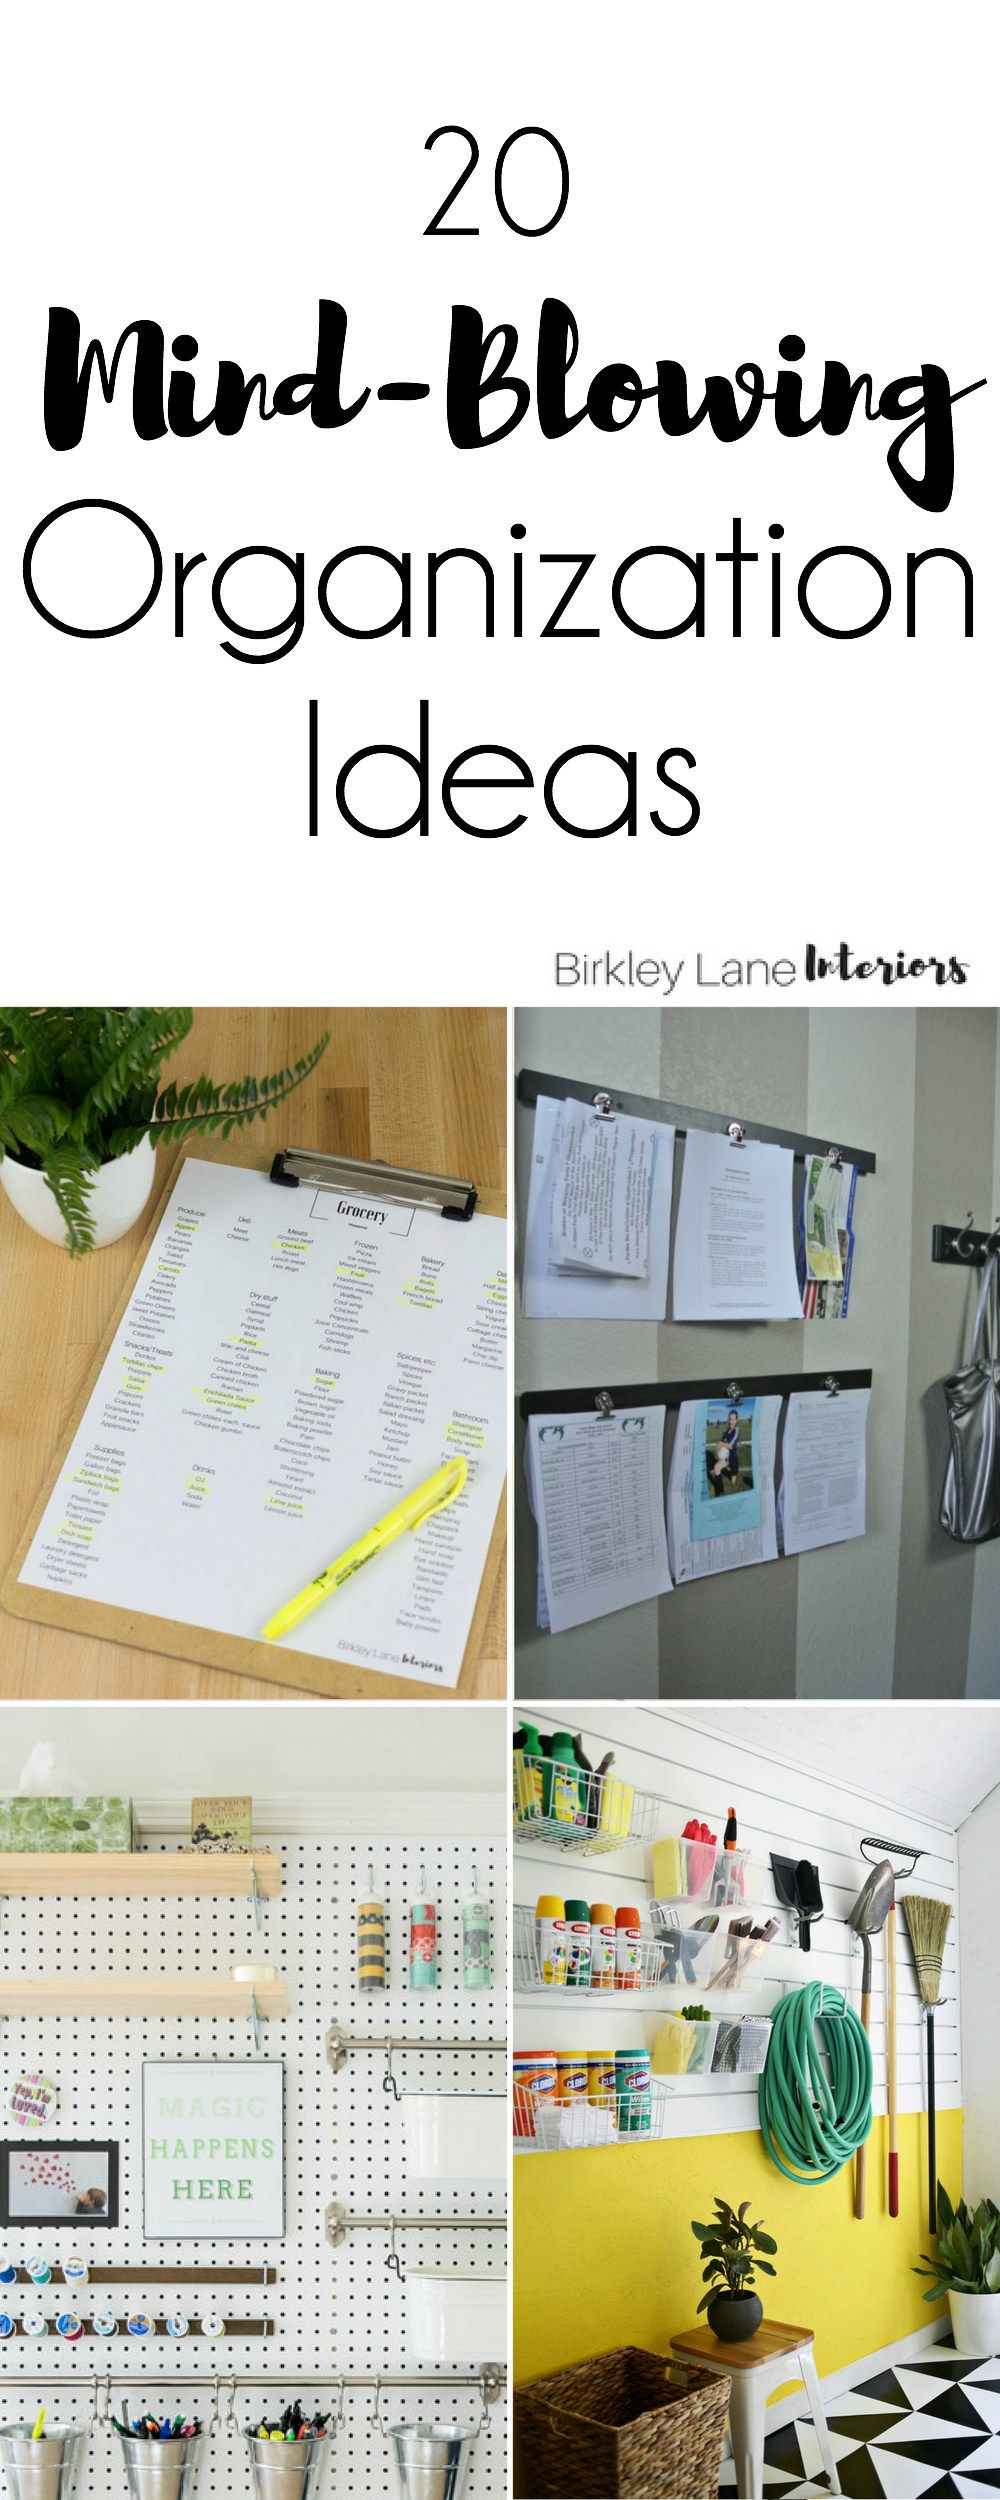 20 Mind-Blowing Organization Ideas for Your Home | Birkley Lane Interiors